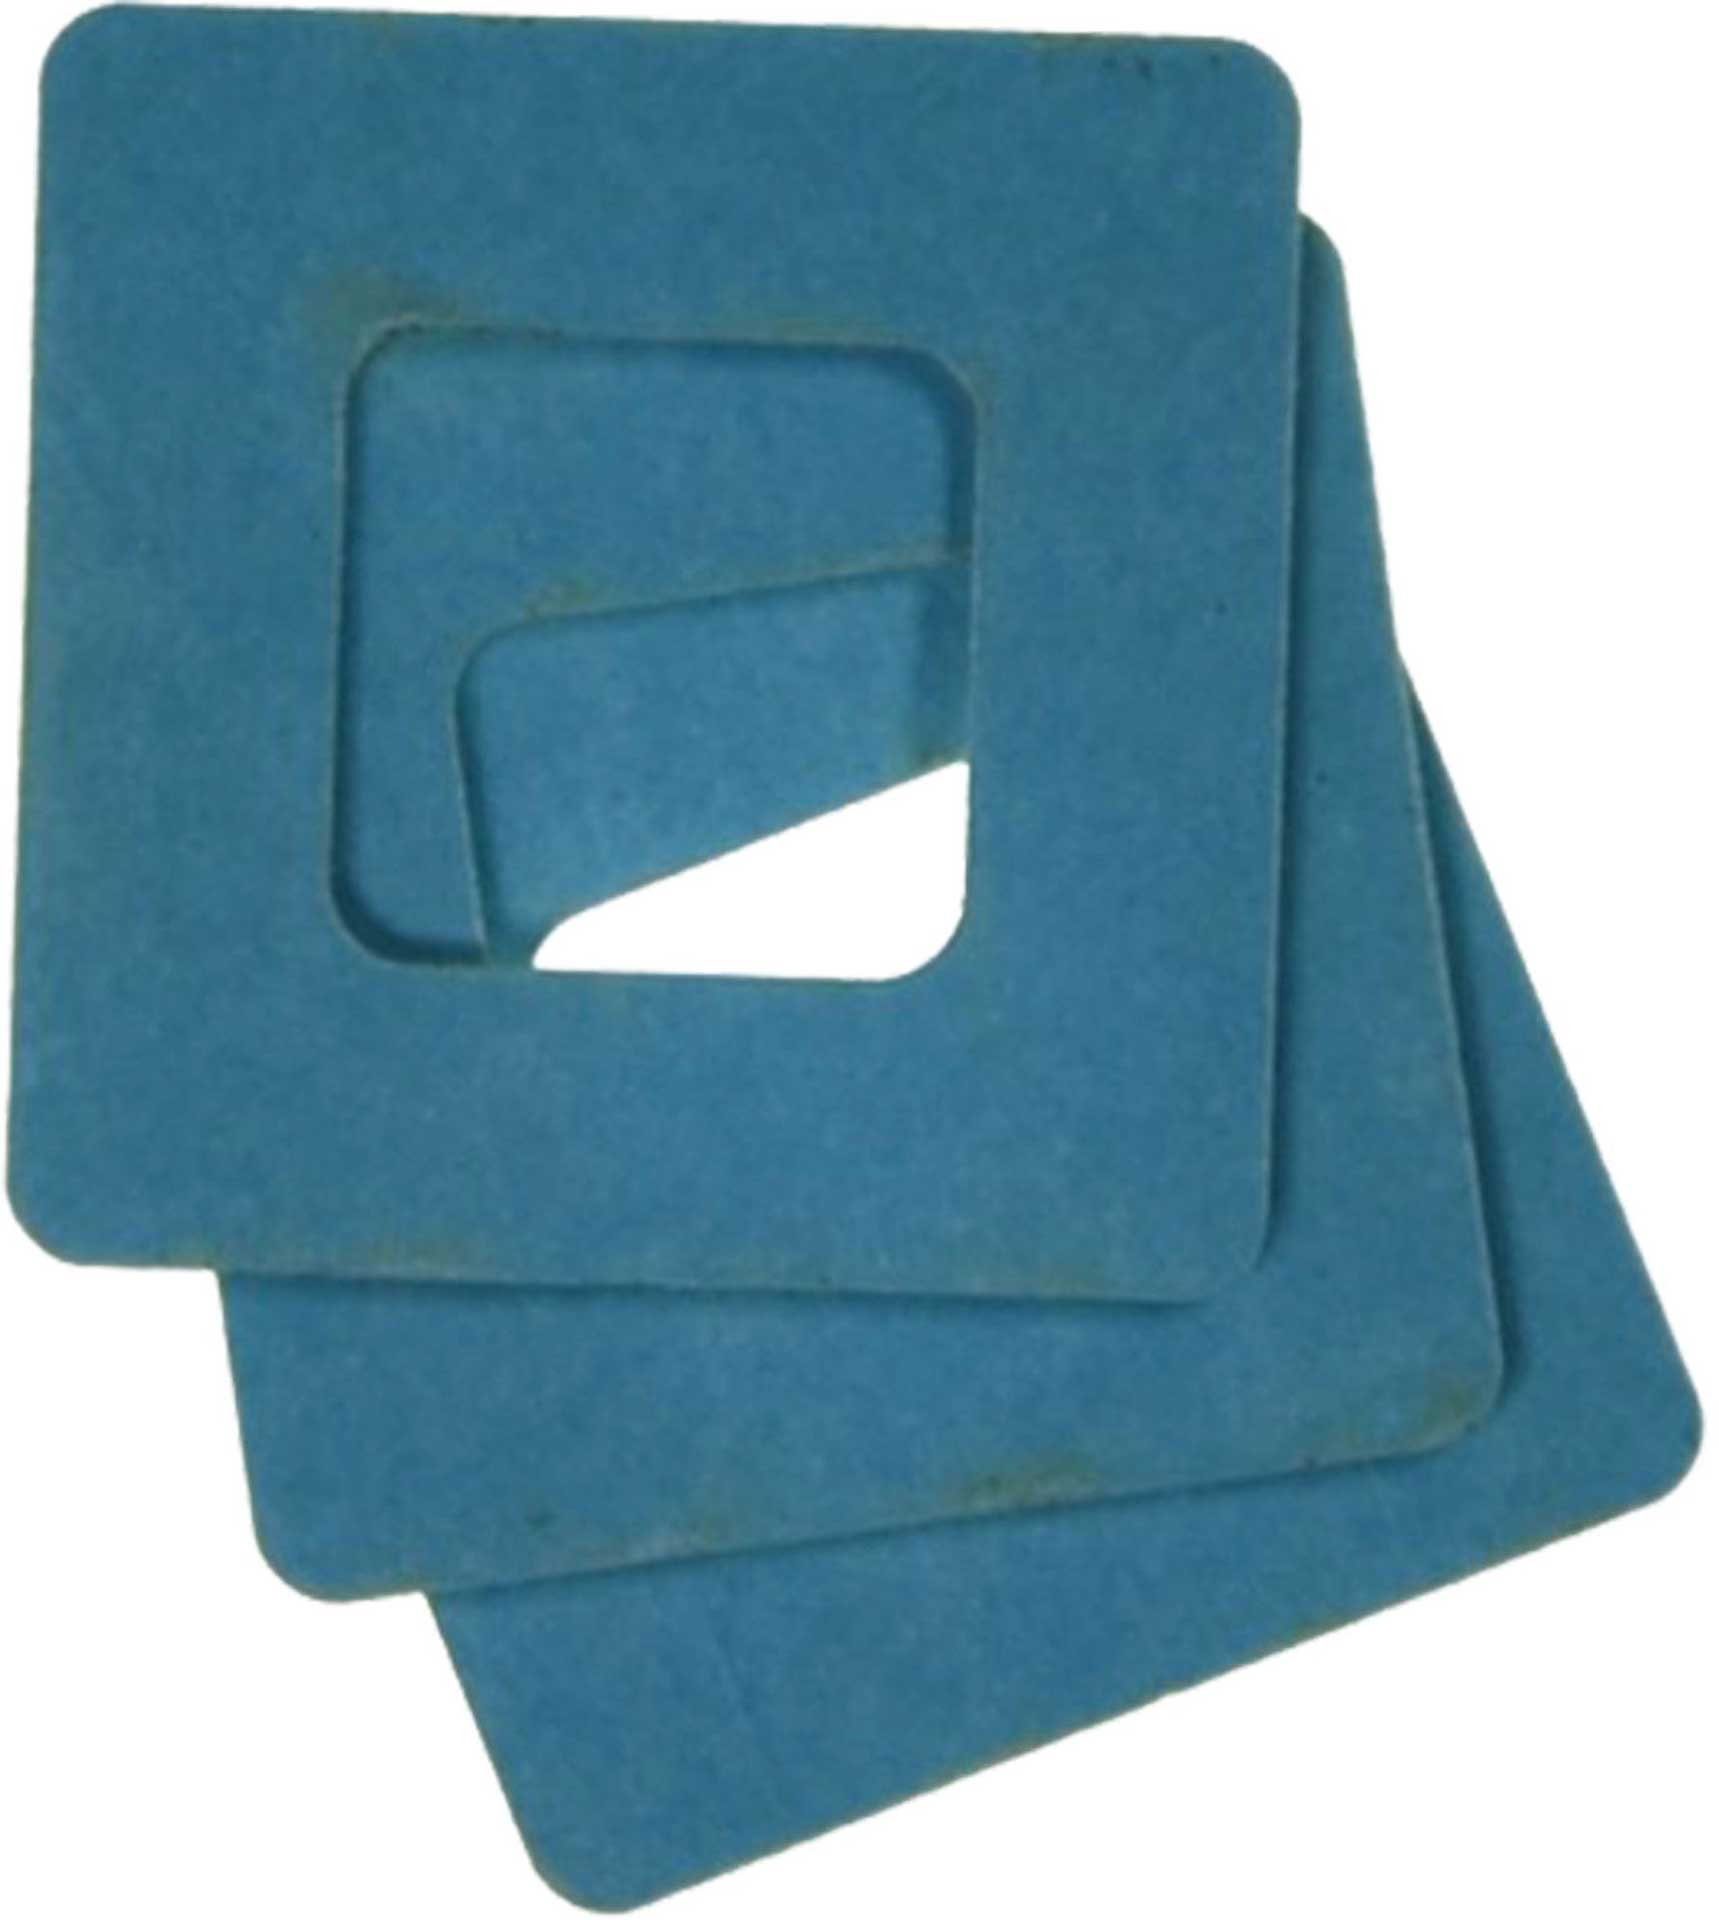 BAVARIAN DEMON ADHESIVE PADS ACRO ACP FOR AXON, CORTEX PRO